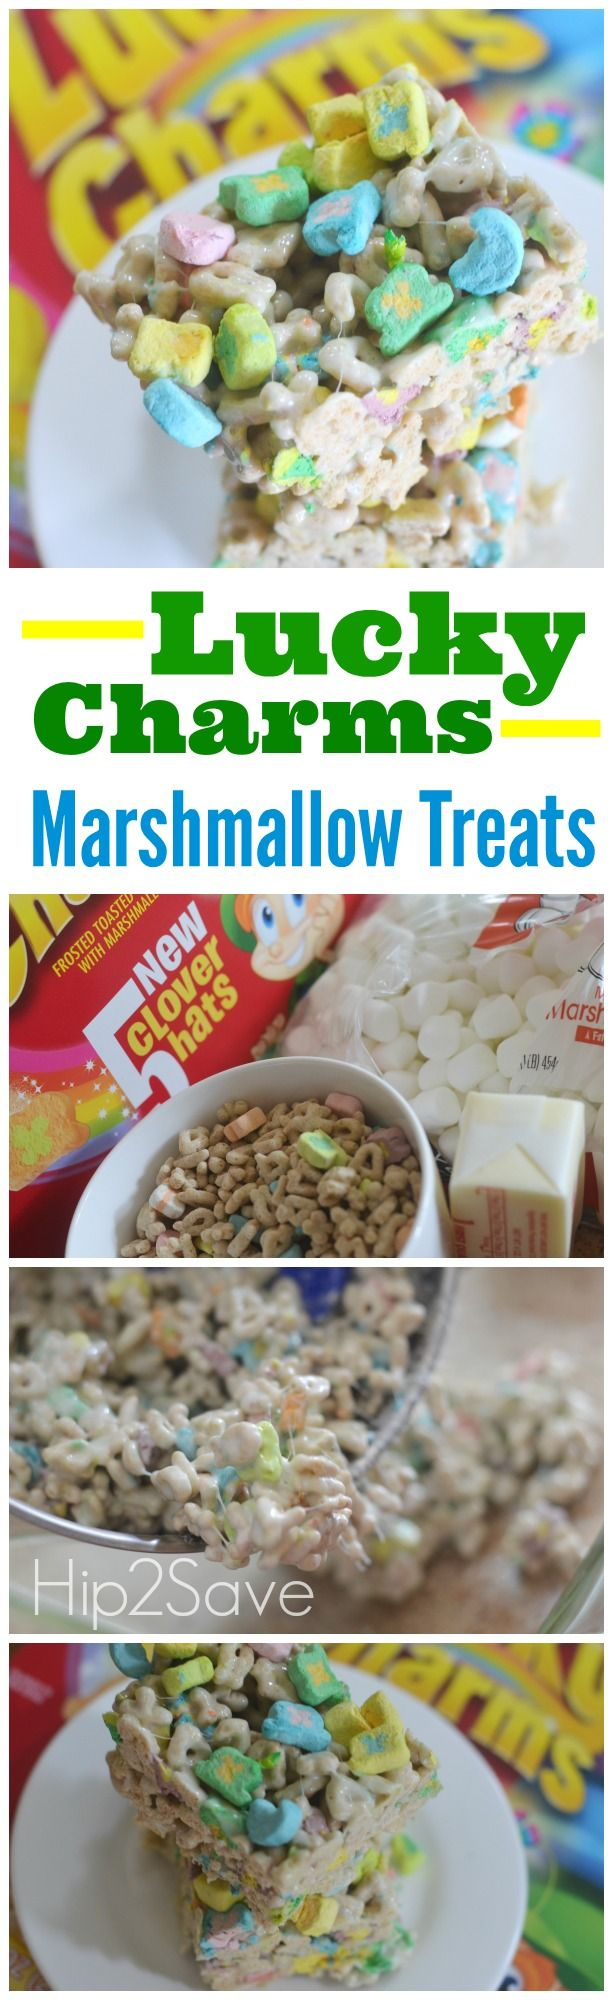 Lucky Charms Marshmallow Treats #marshmallowtreats